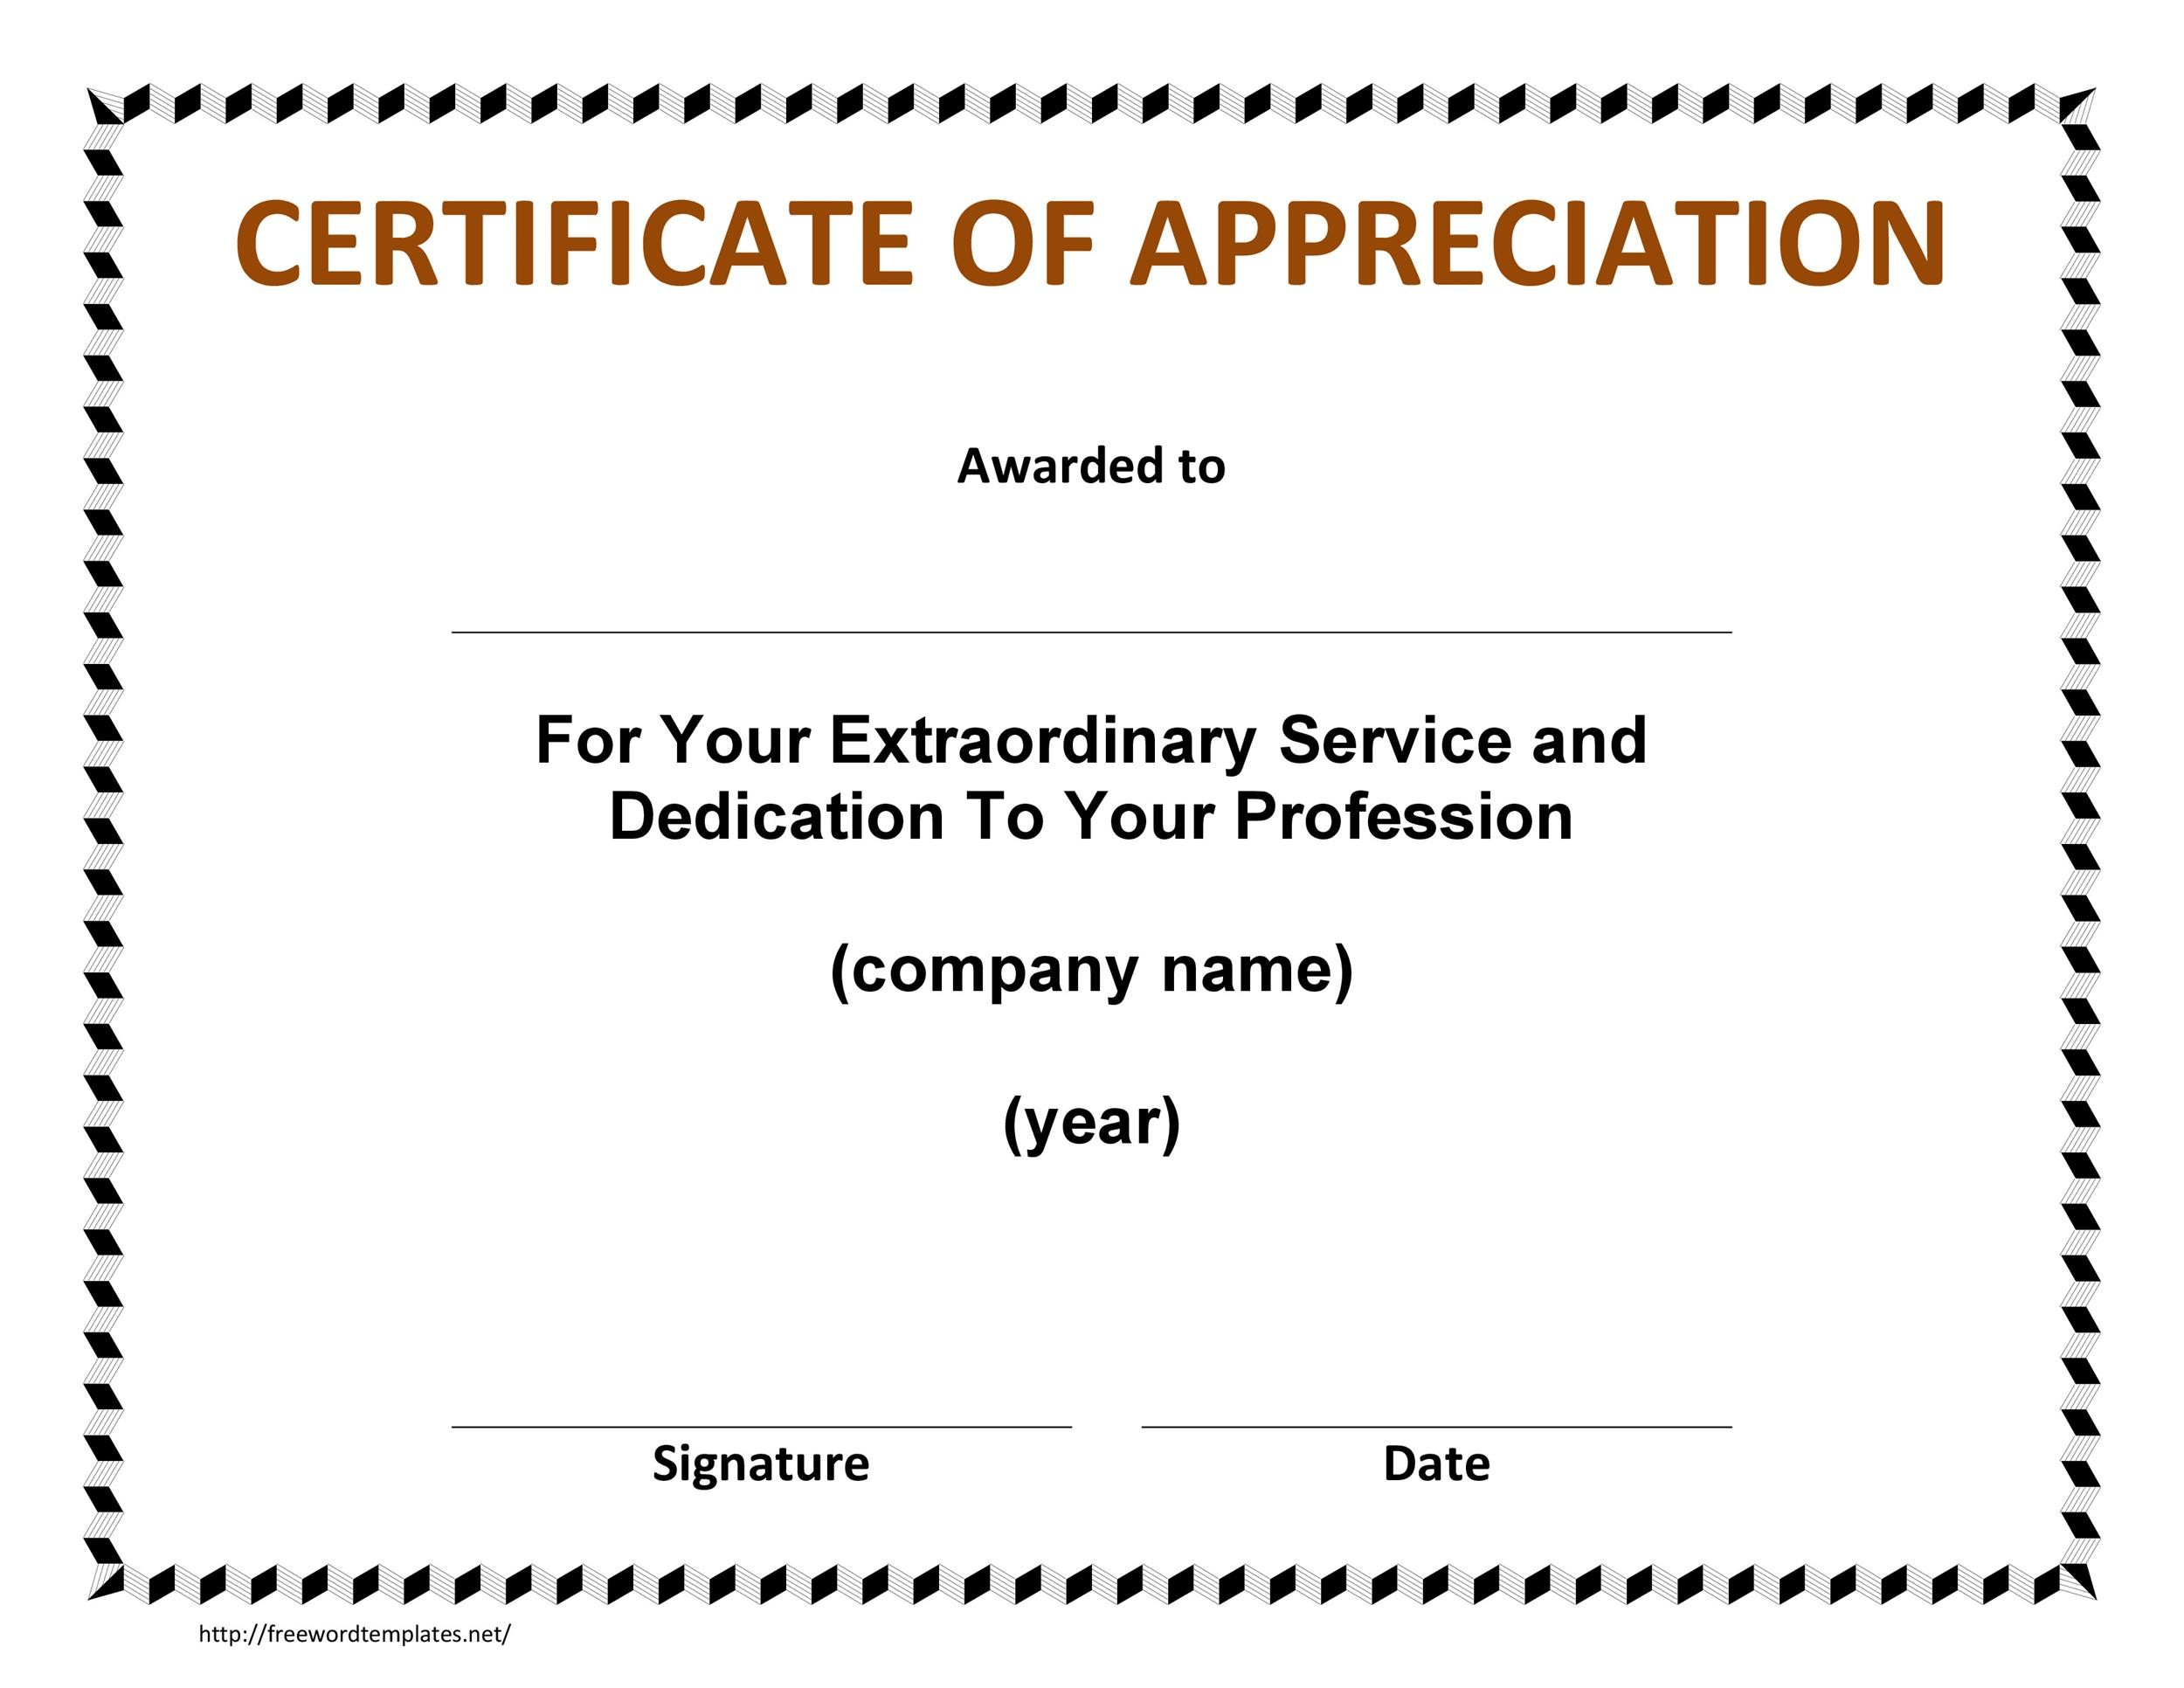 30 Free Certificate of Appreciation Templates and Letters - Sample Certificate Of Appreciation